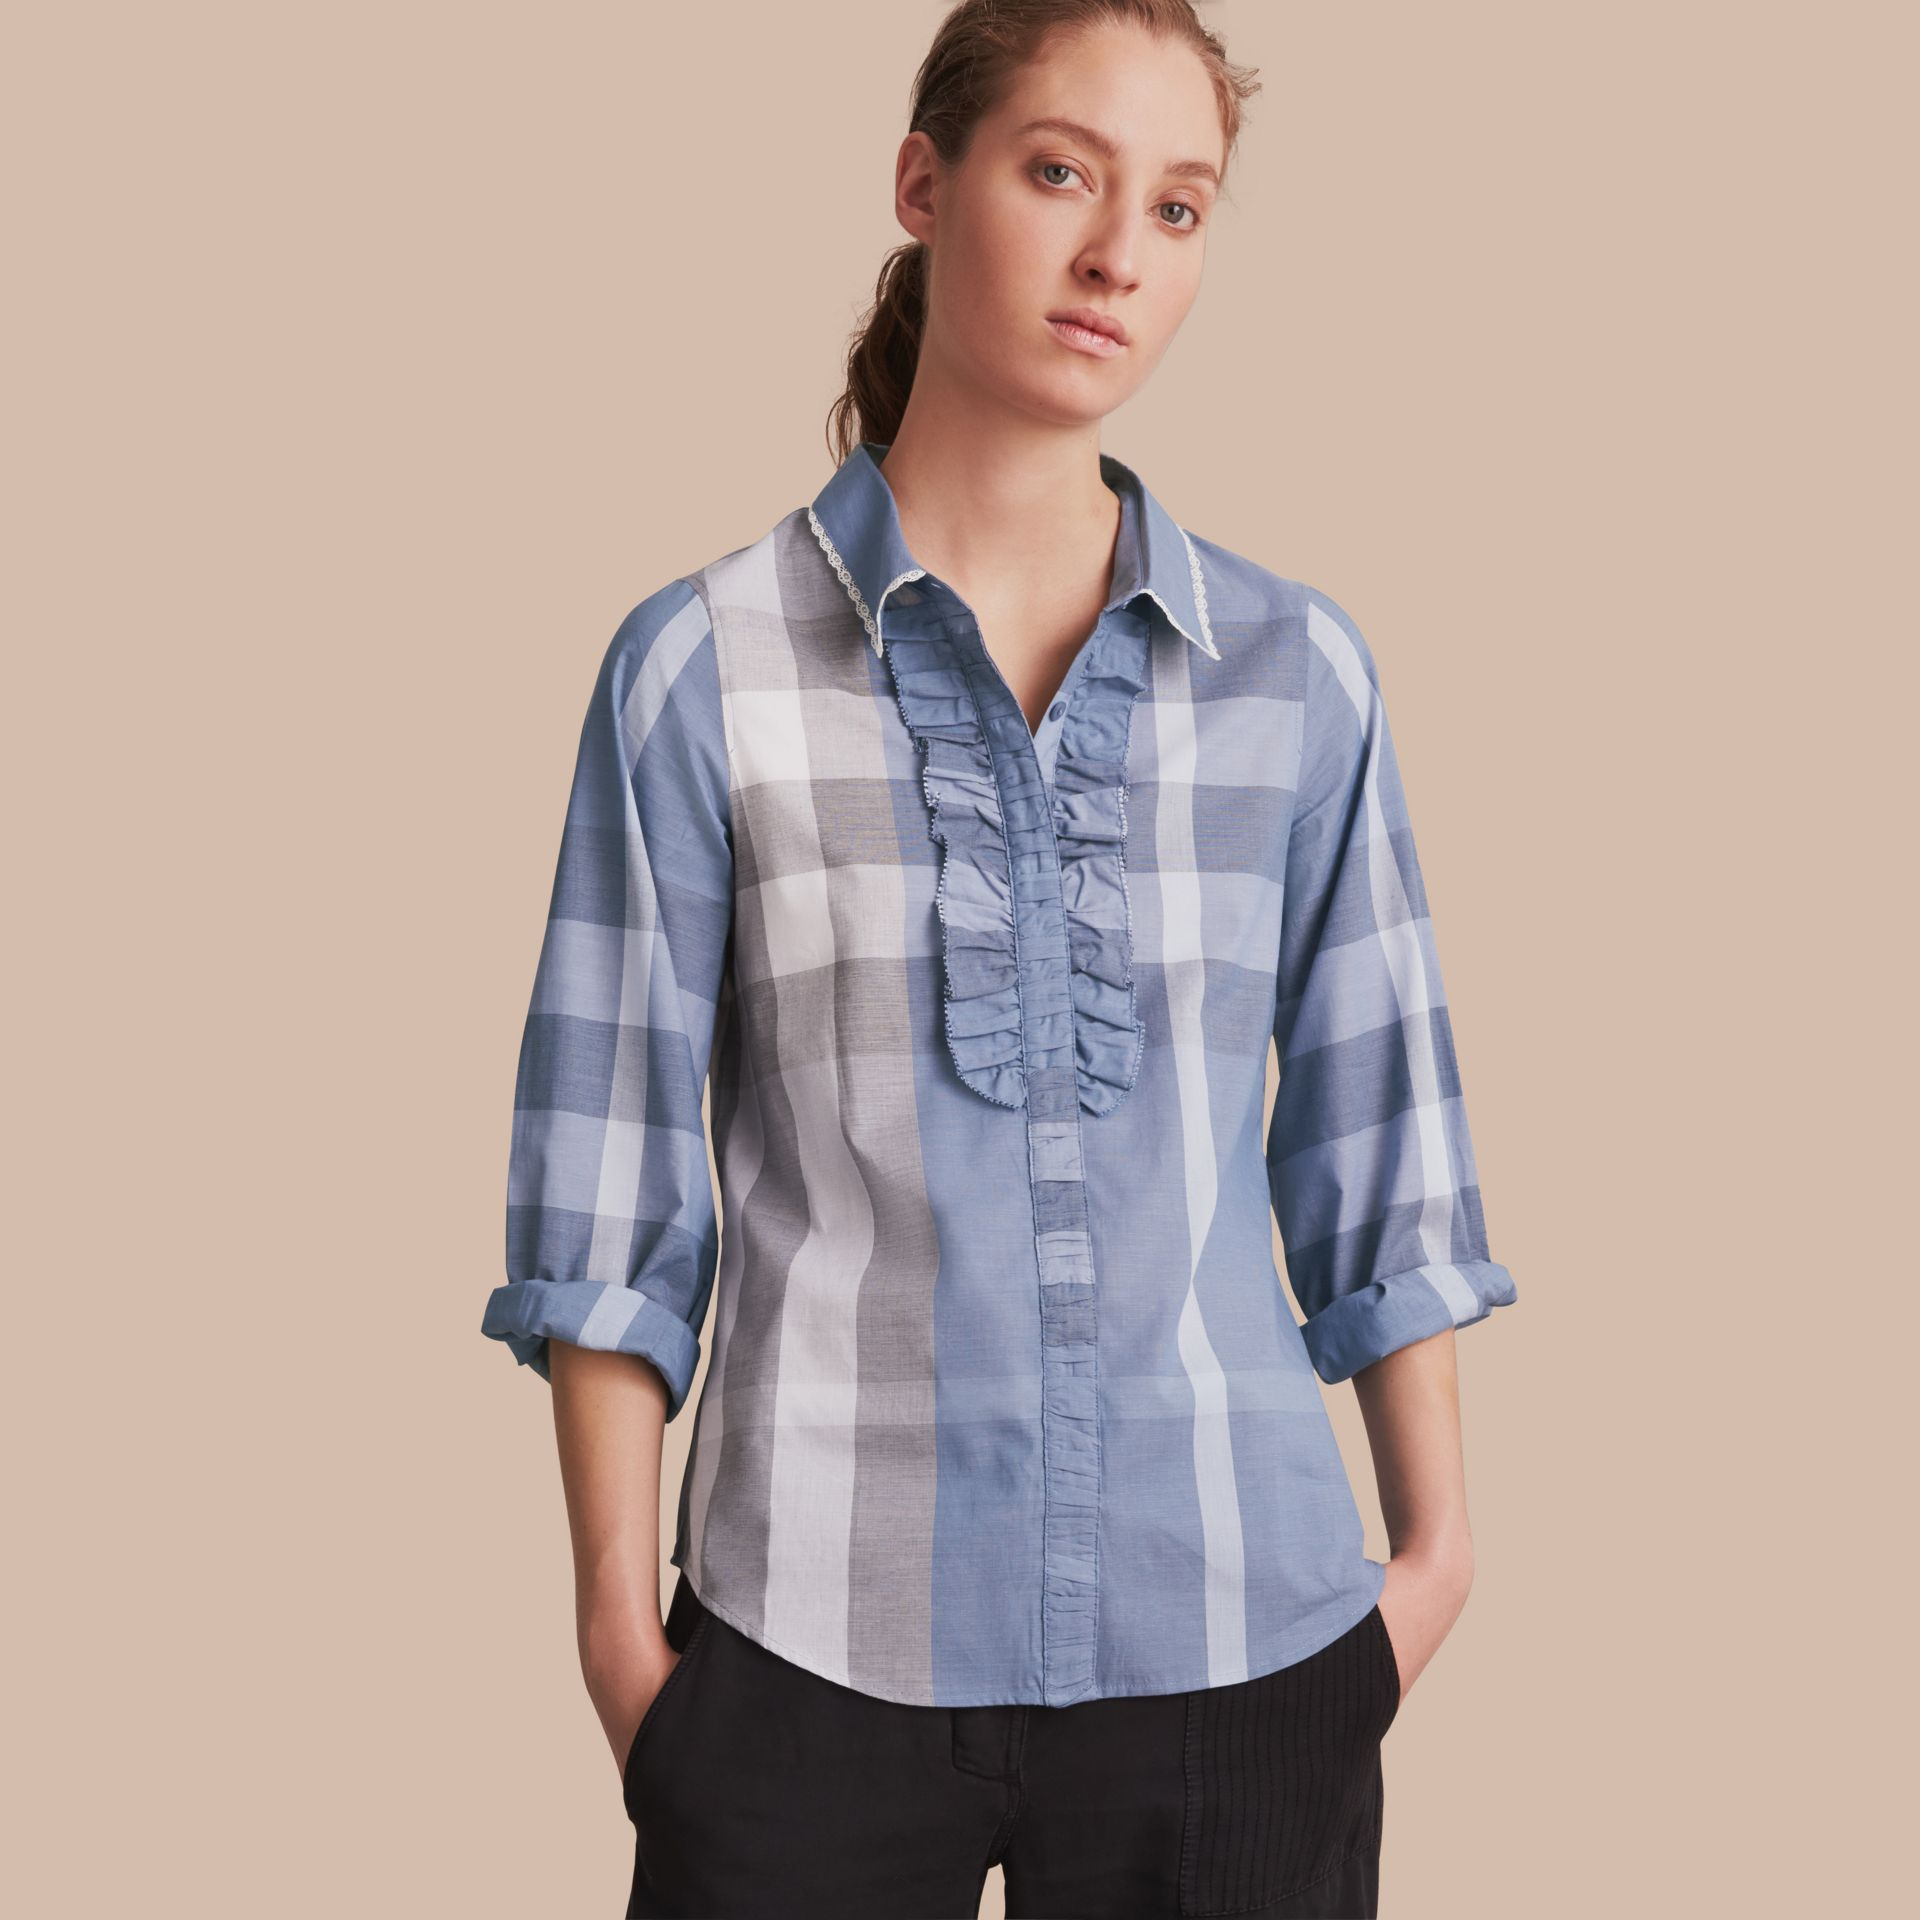 Ruffle Detail and Lace Trim Check Cotton Shirt in Canvas Blue - Women | Burberry - gallery image 1